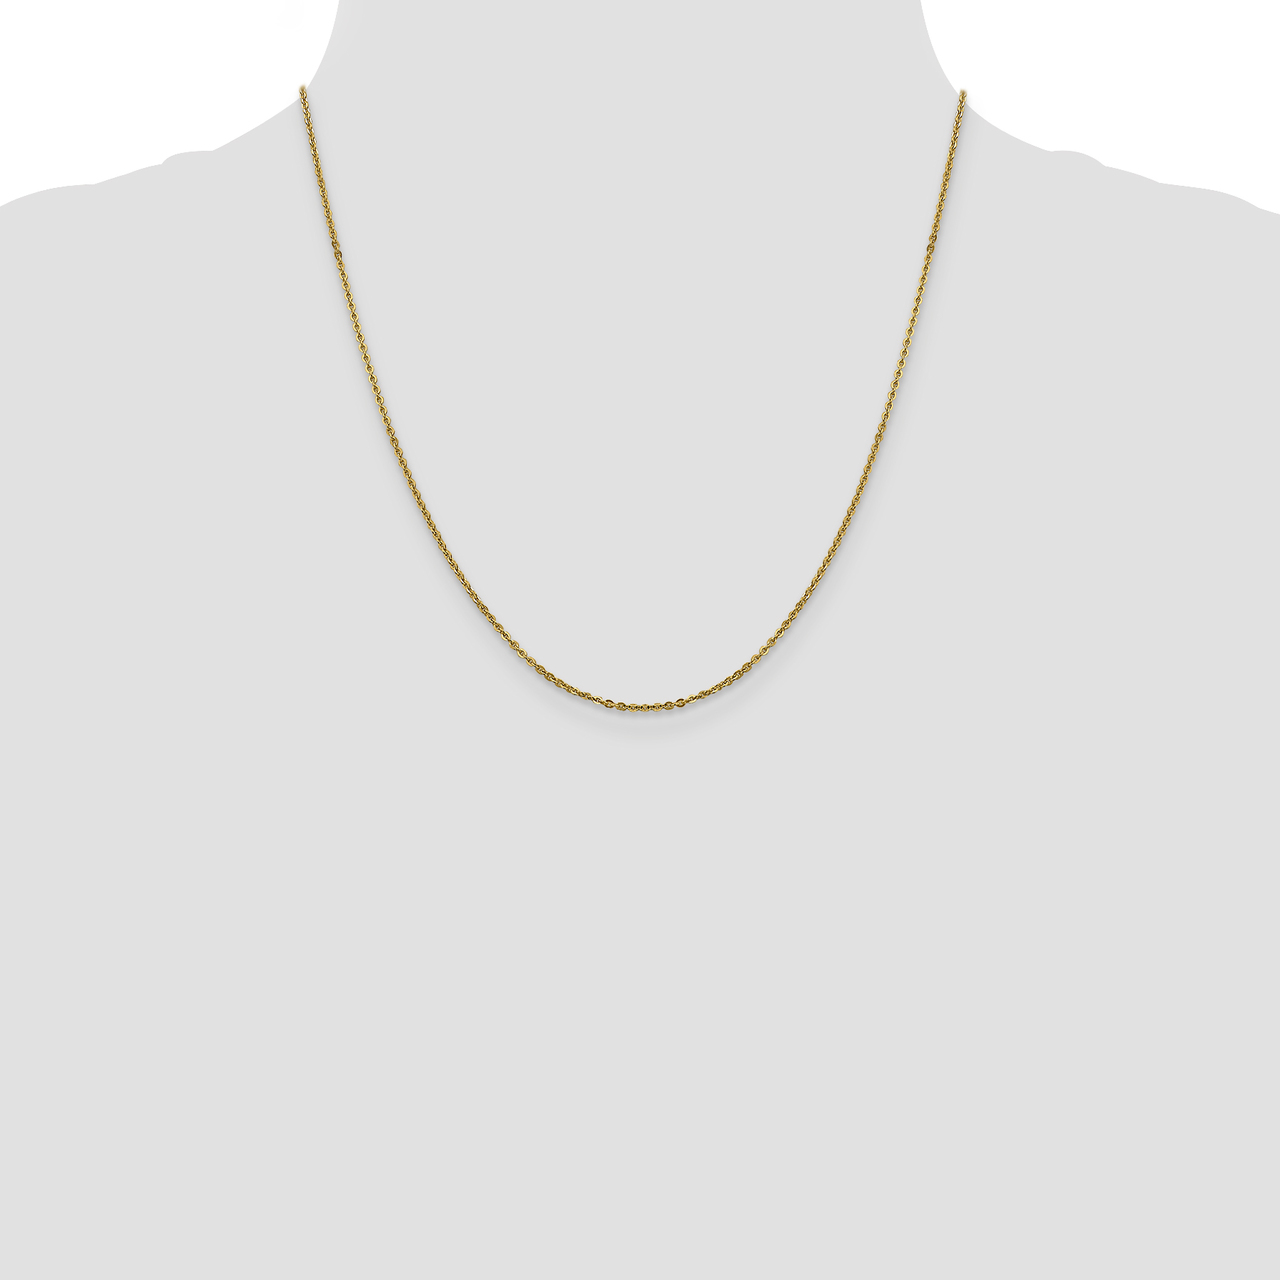 Leslie S 14k Yellow Gold Flat Cable Chain Necklace